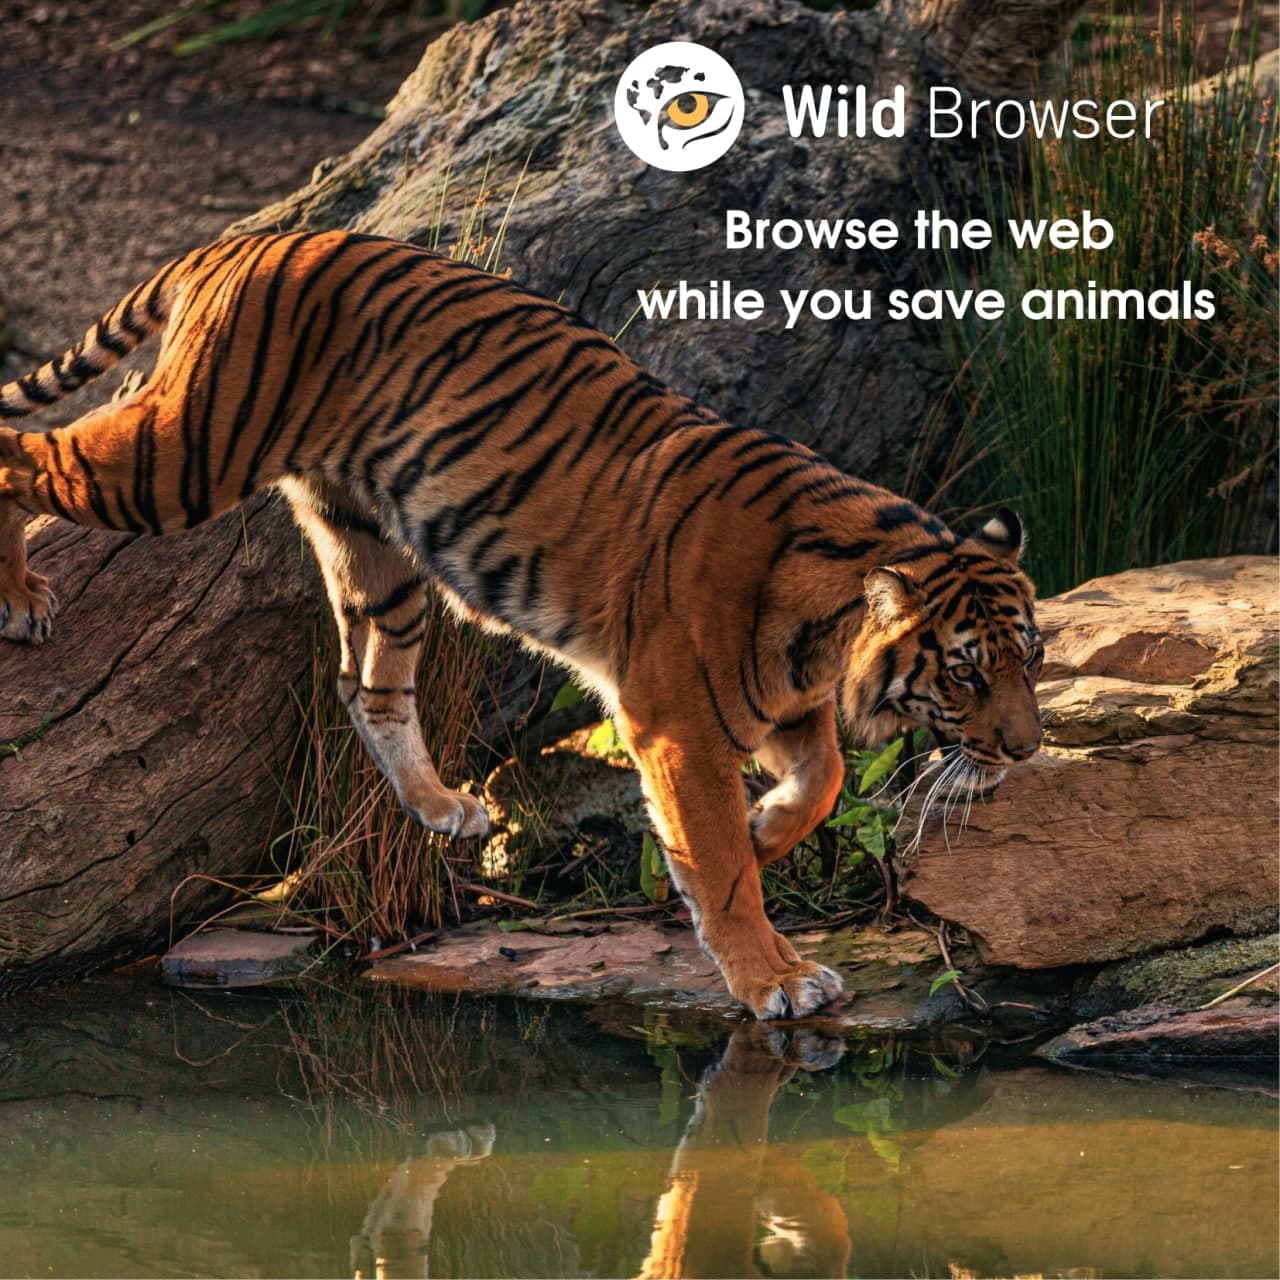 Wild Browser - save wildlife while browsing the web